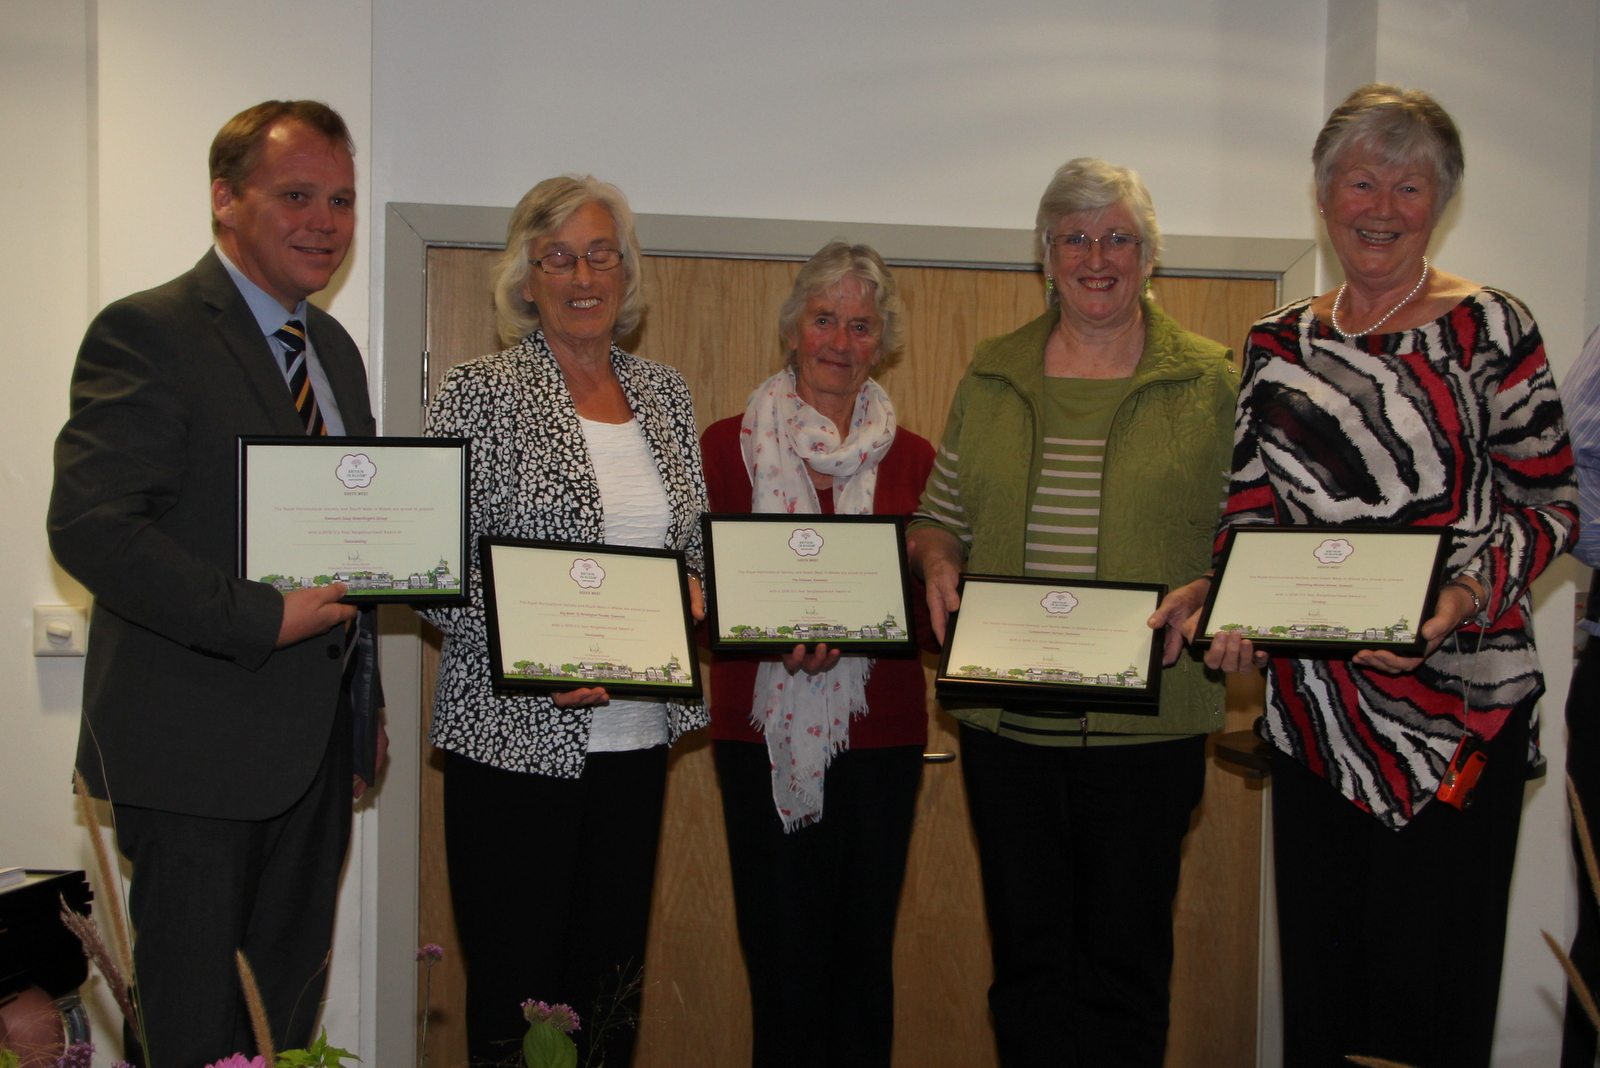 Receiving Neighbourhood awards from Terry Doyle